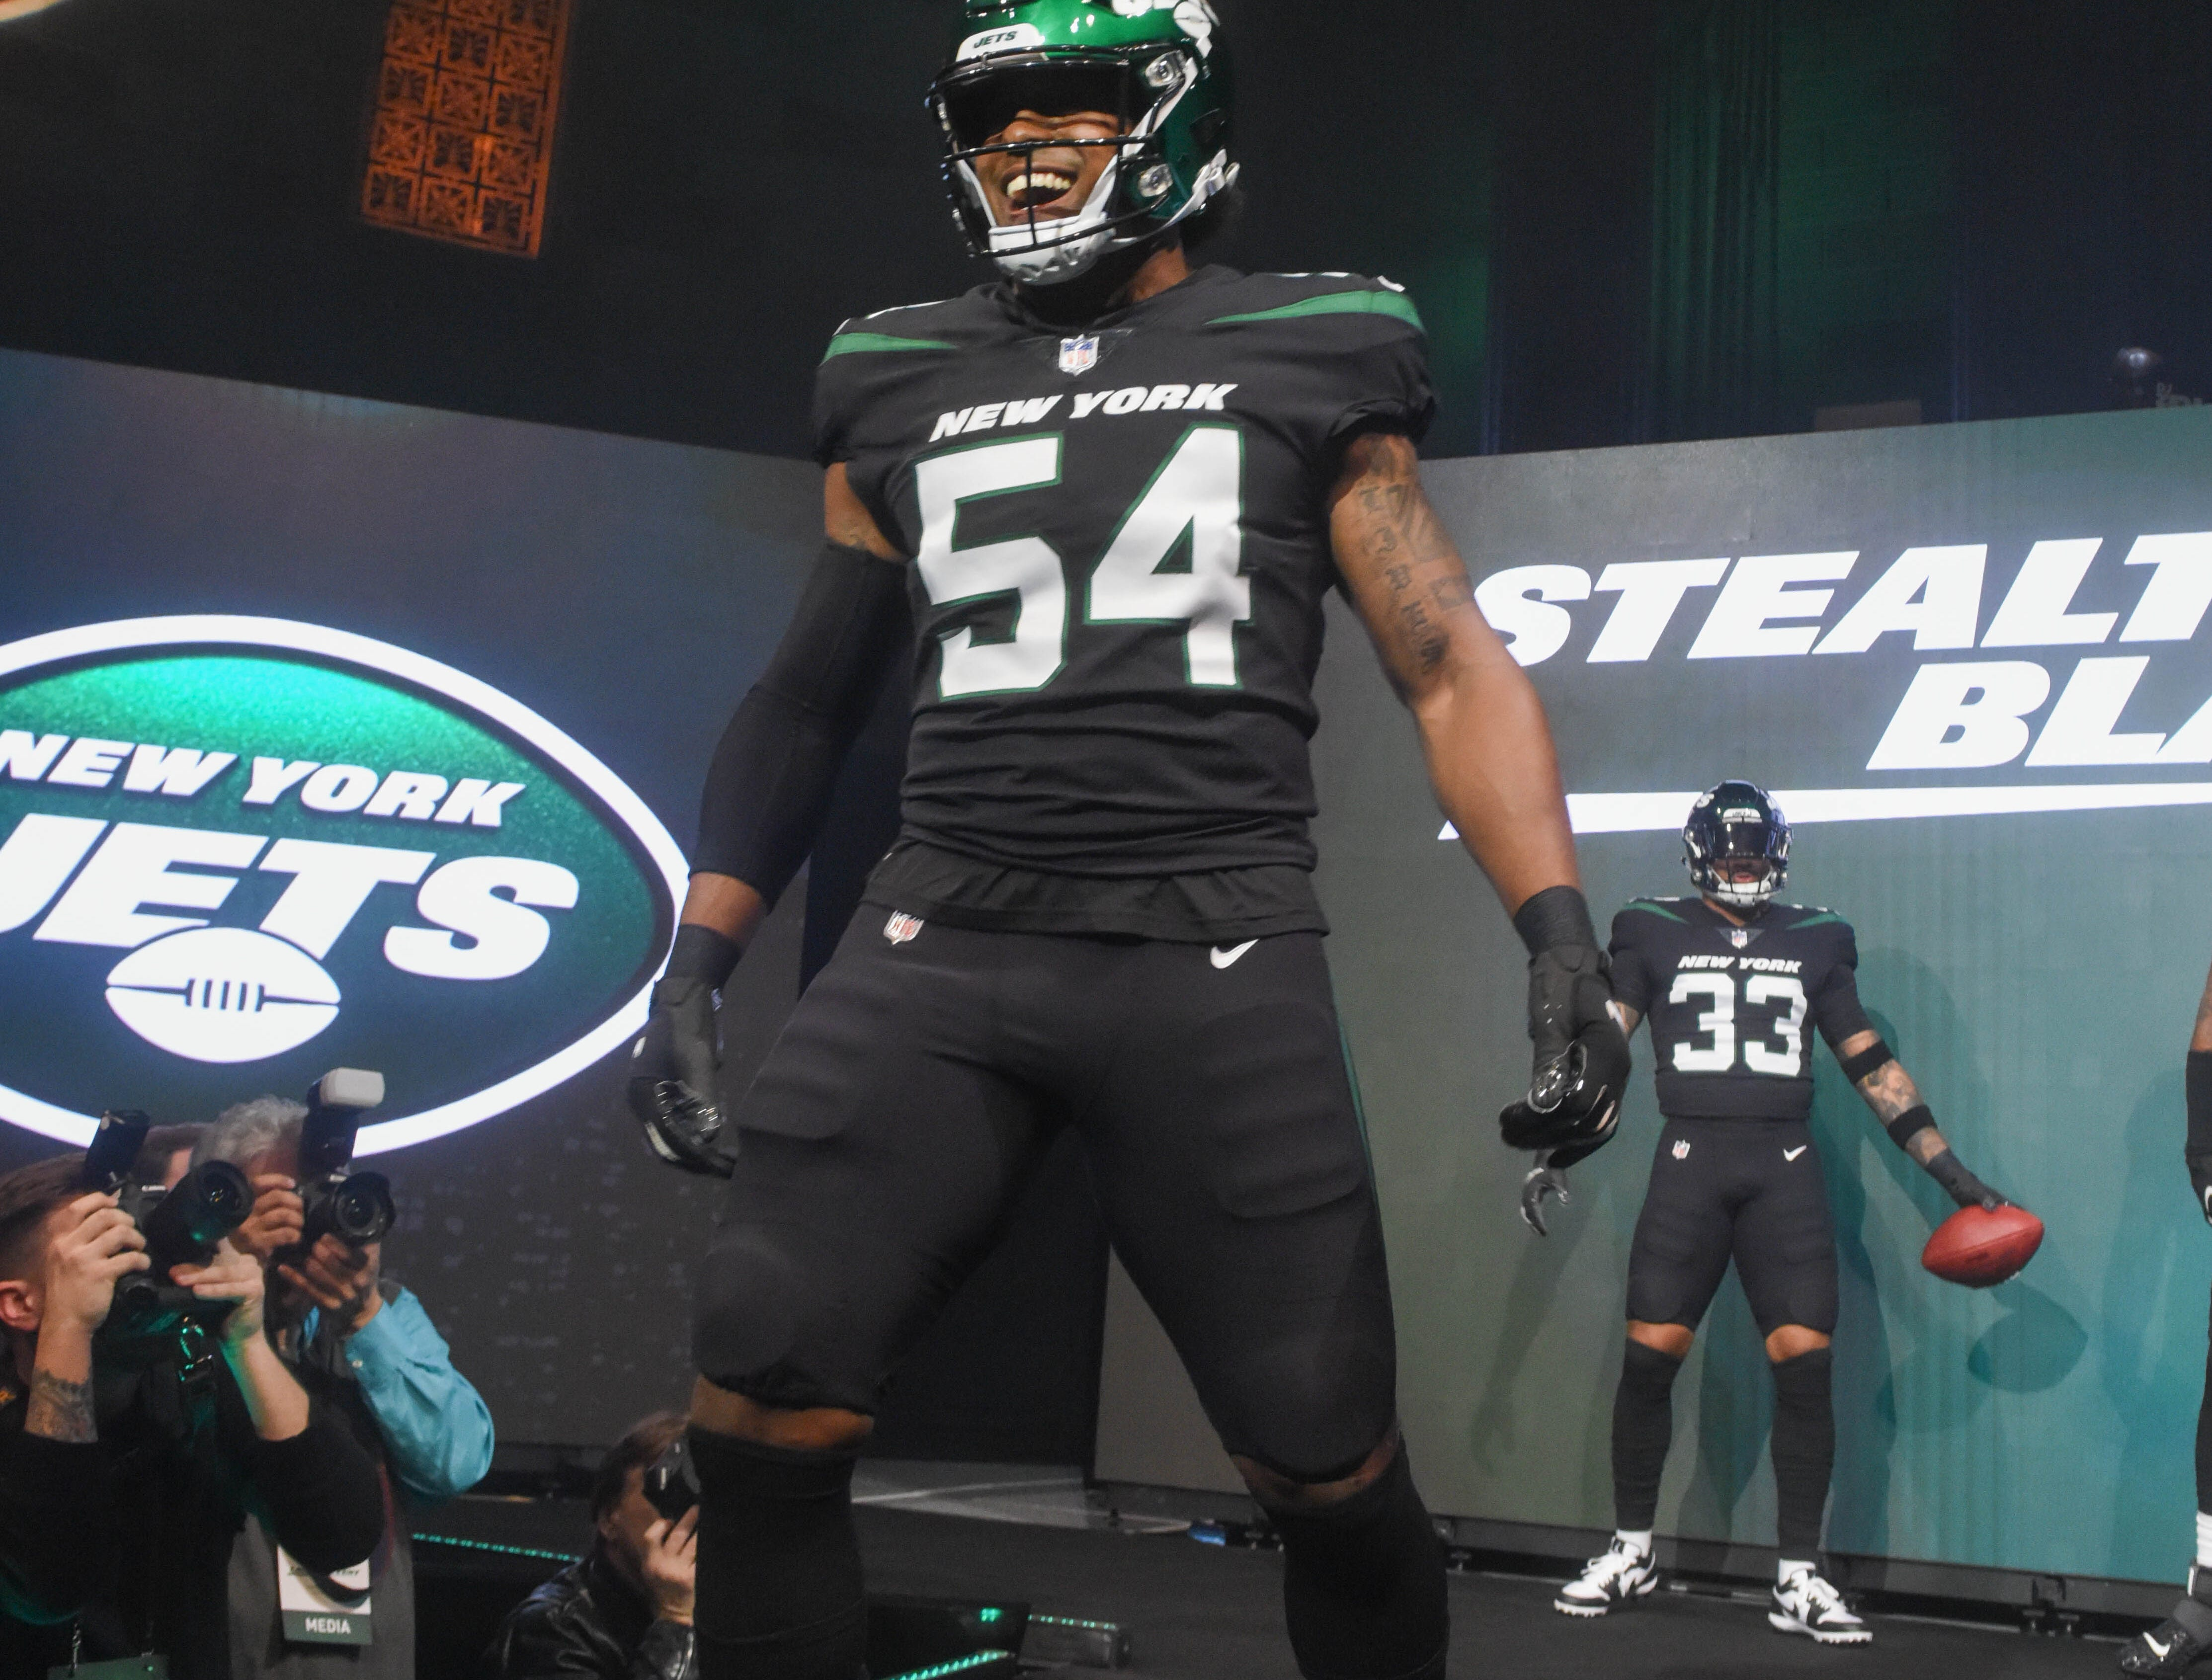 Avery Williamson (NY Jets). The NY Jets unveiled their new football uniforms with an event hosted by JB Smoove at Gotham Hall in New York. 04/05/2019